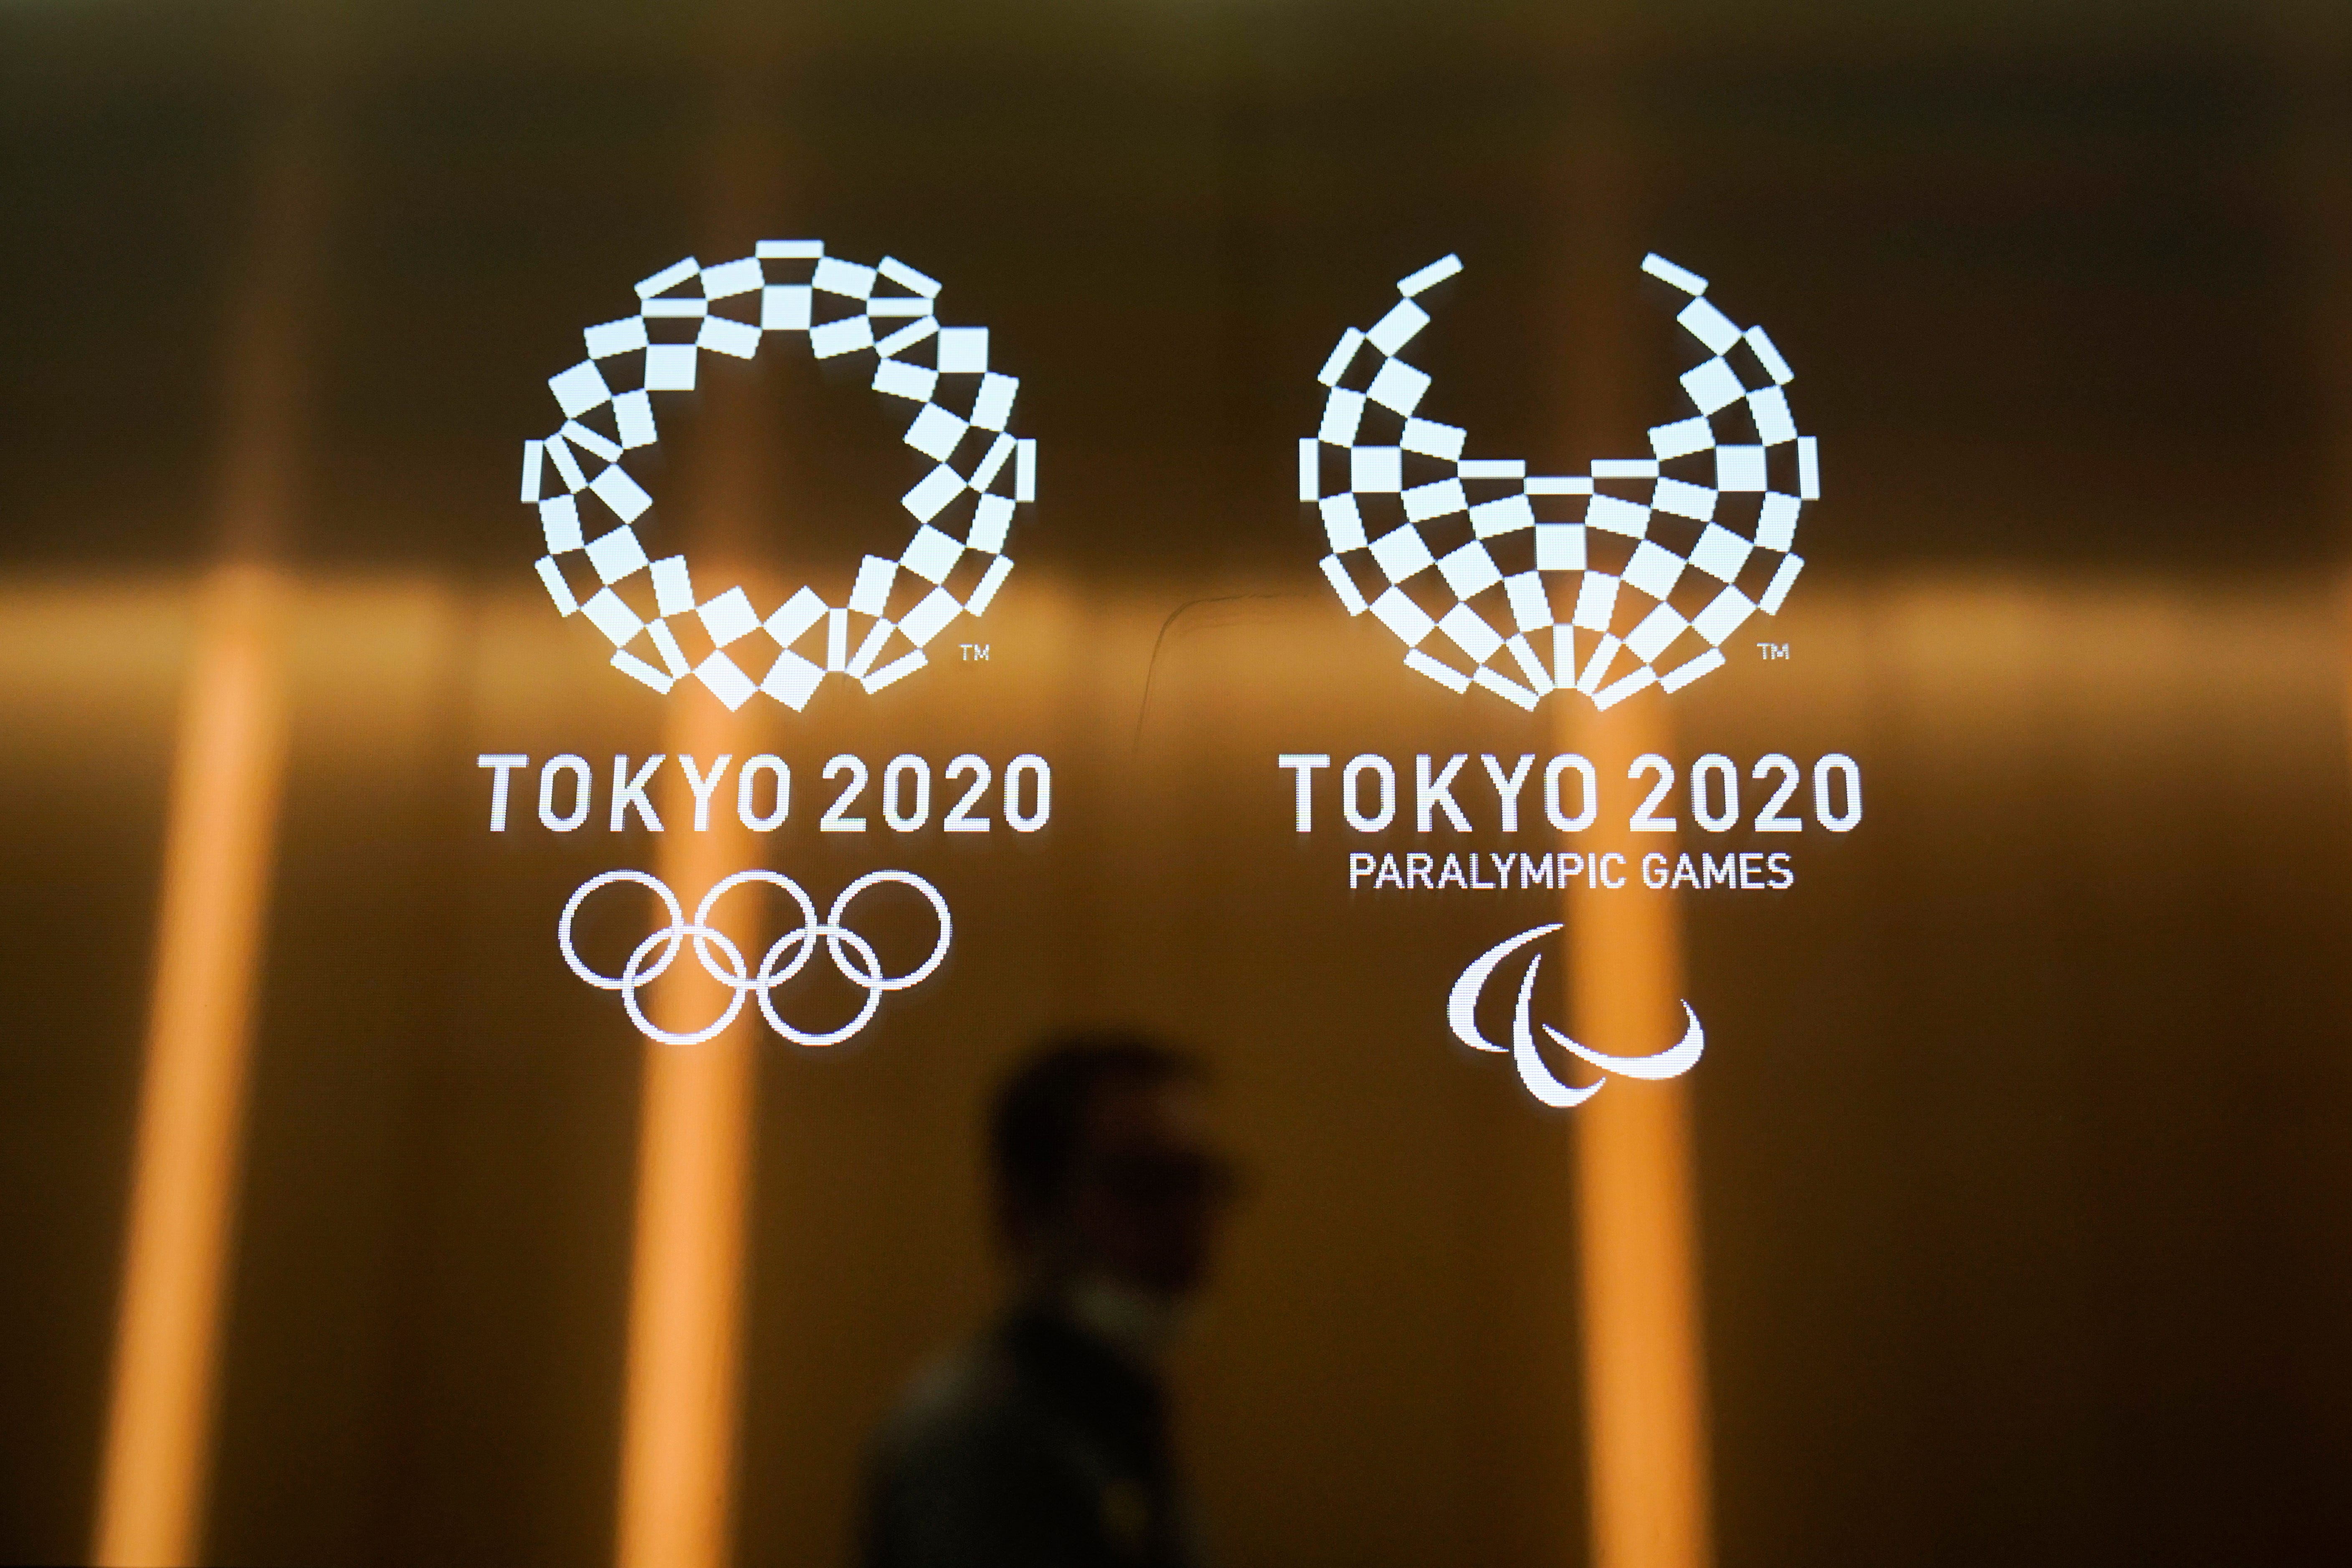 USOPC goes against IOC rules, won't prohibit athletes from protesting at Olympic Games